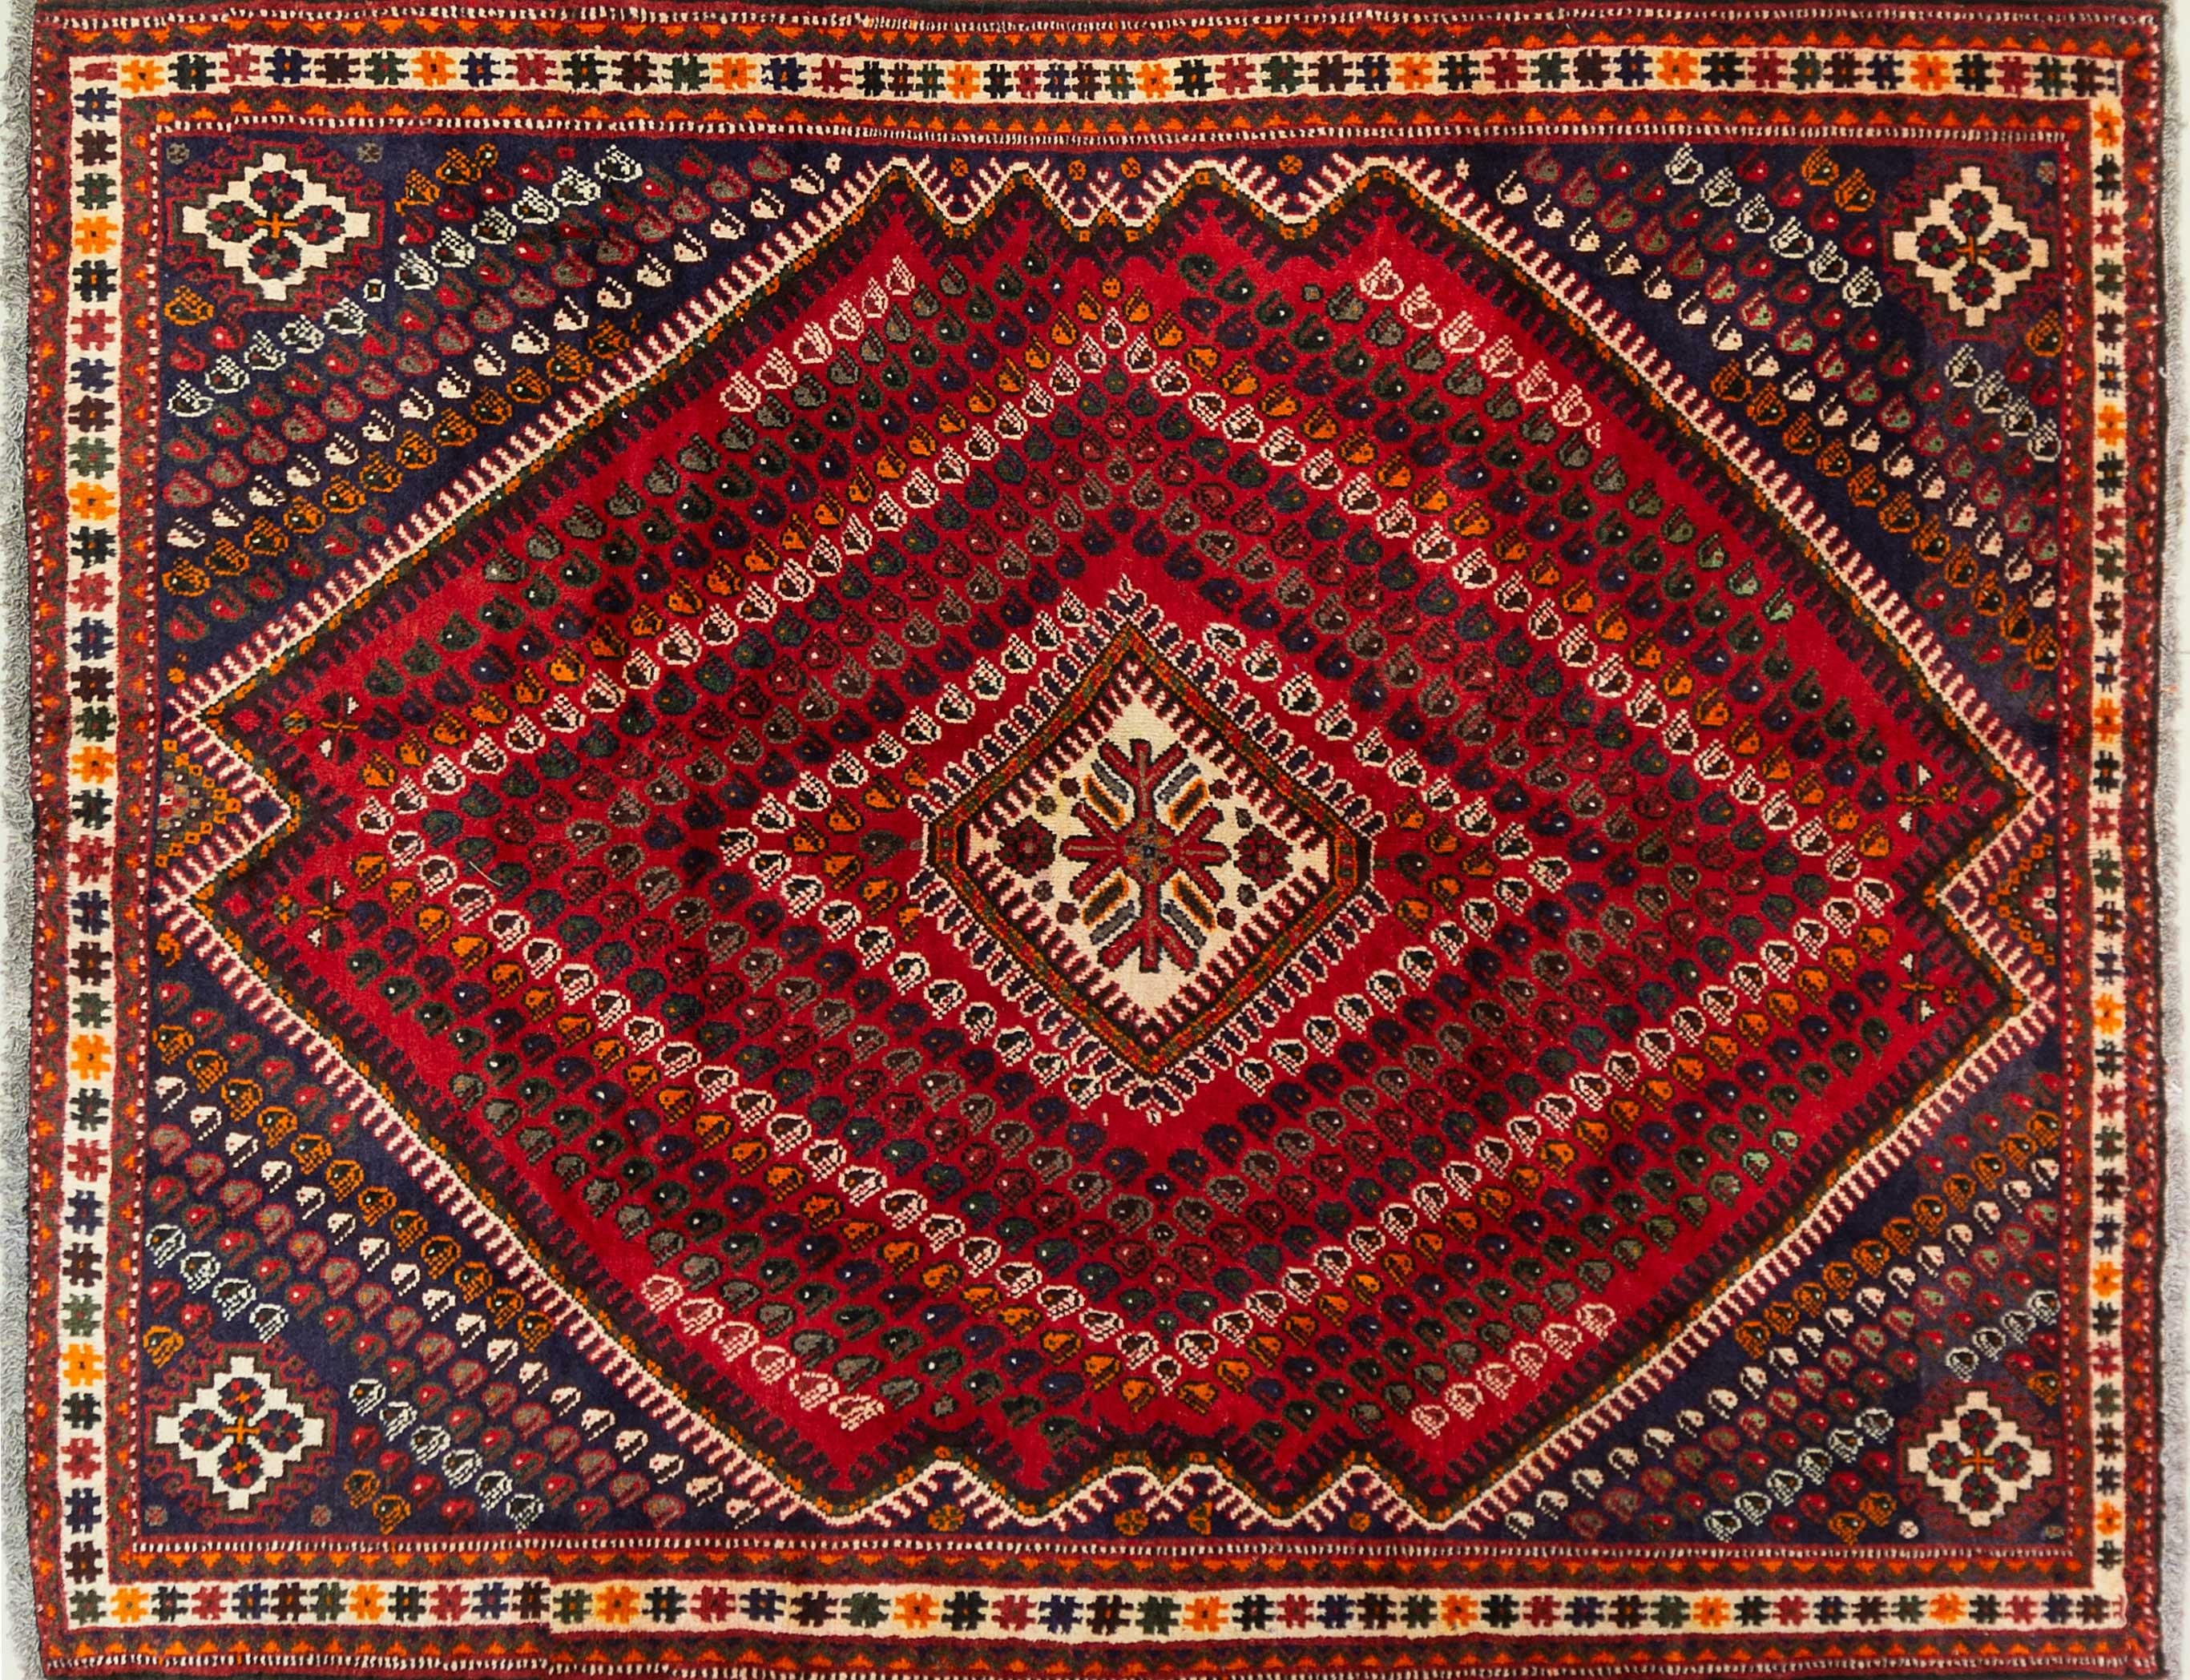 A Persian Hand Knotted Shiraz Carpet, 235 x 190